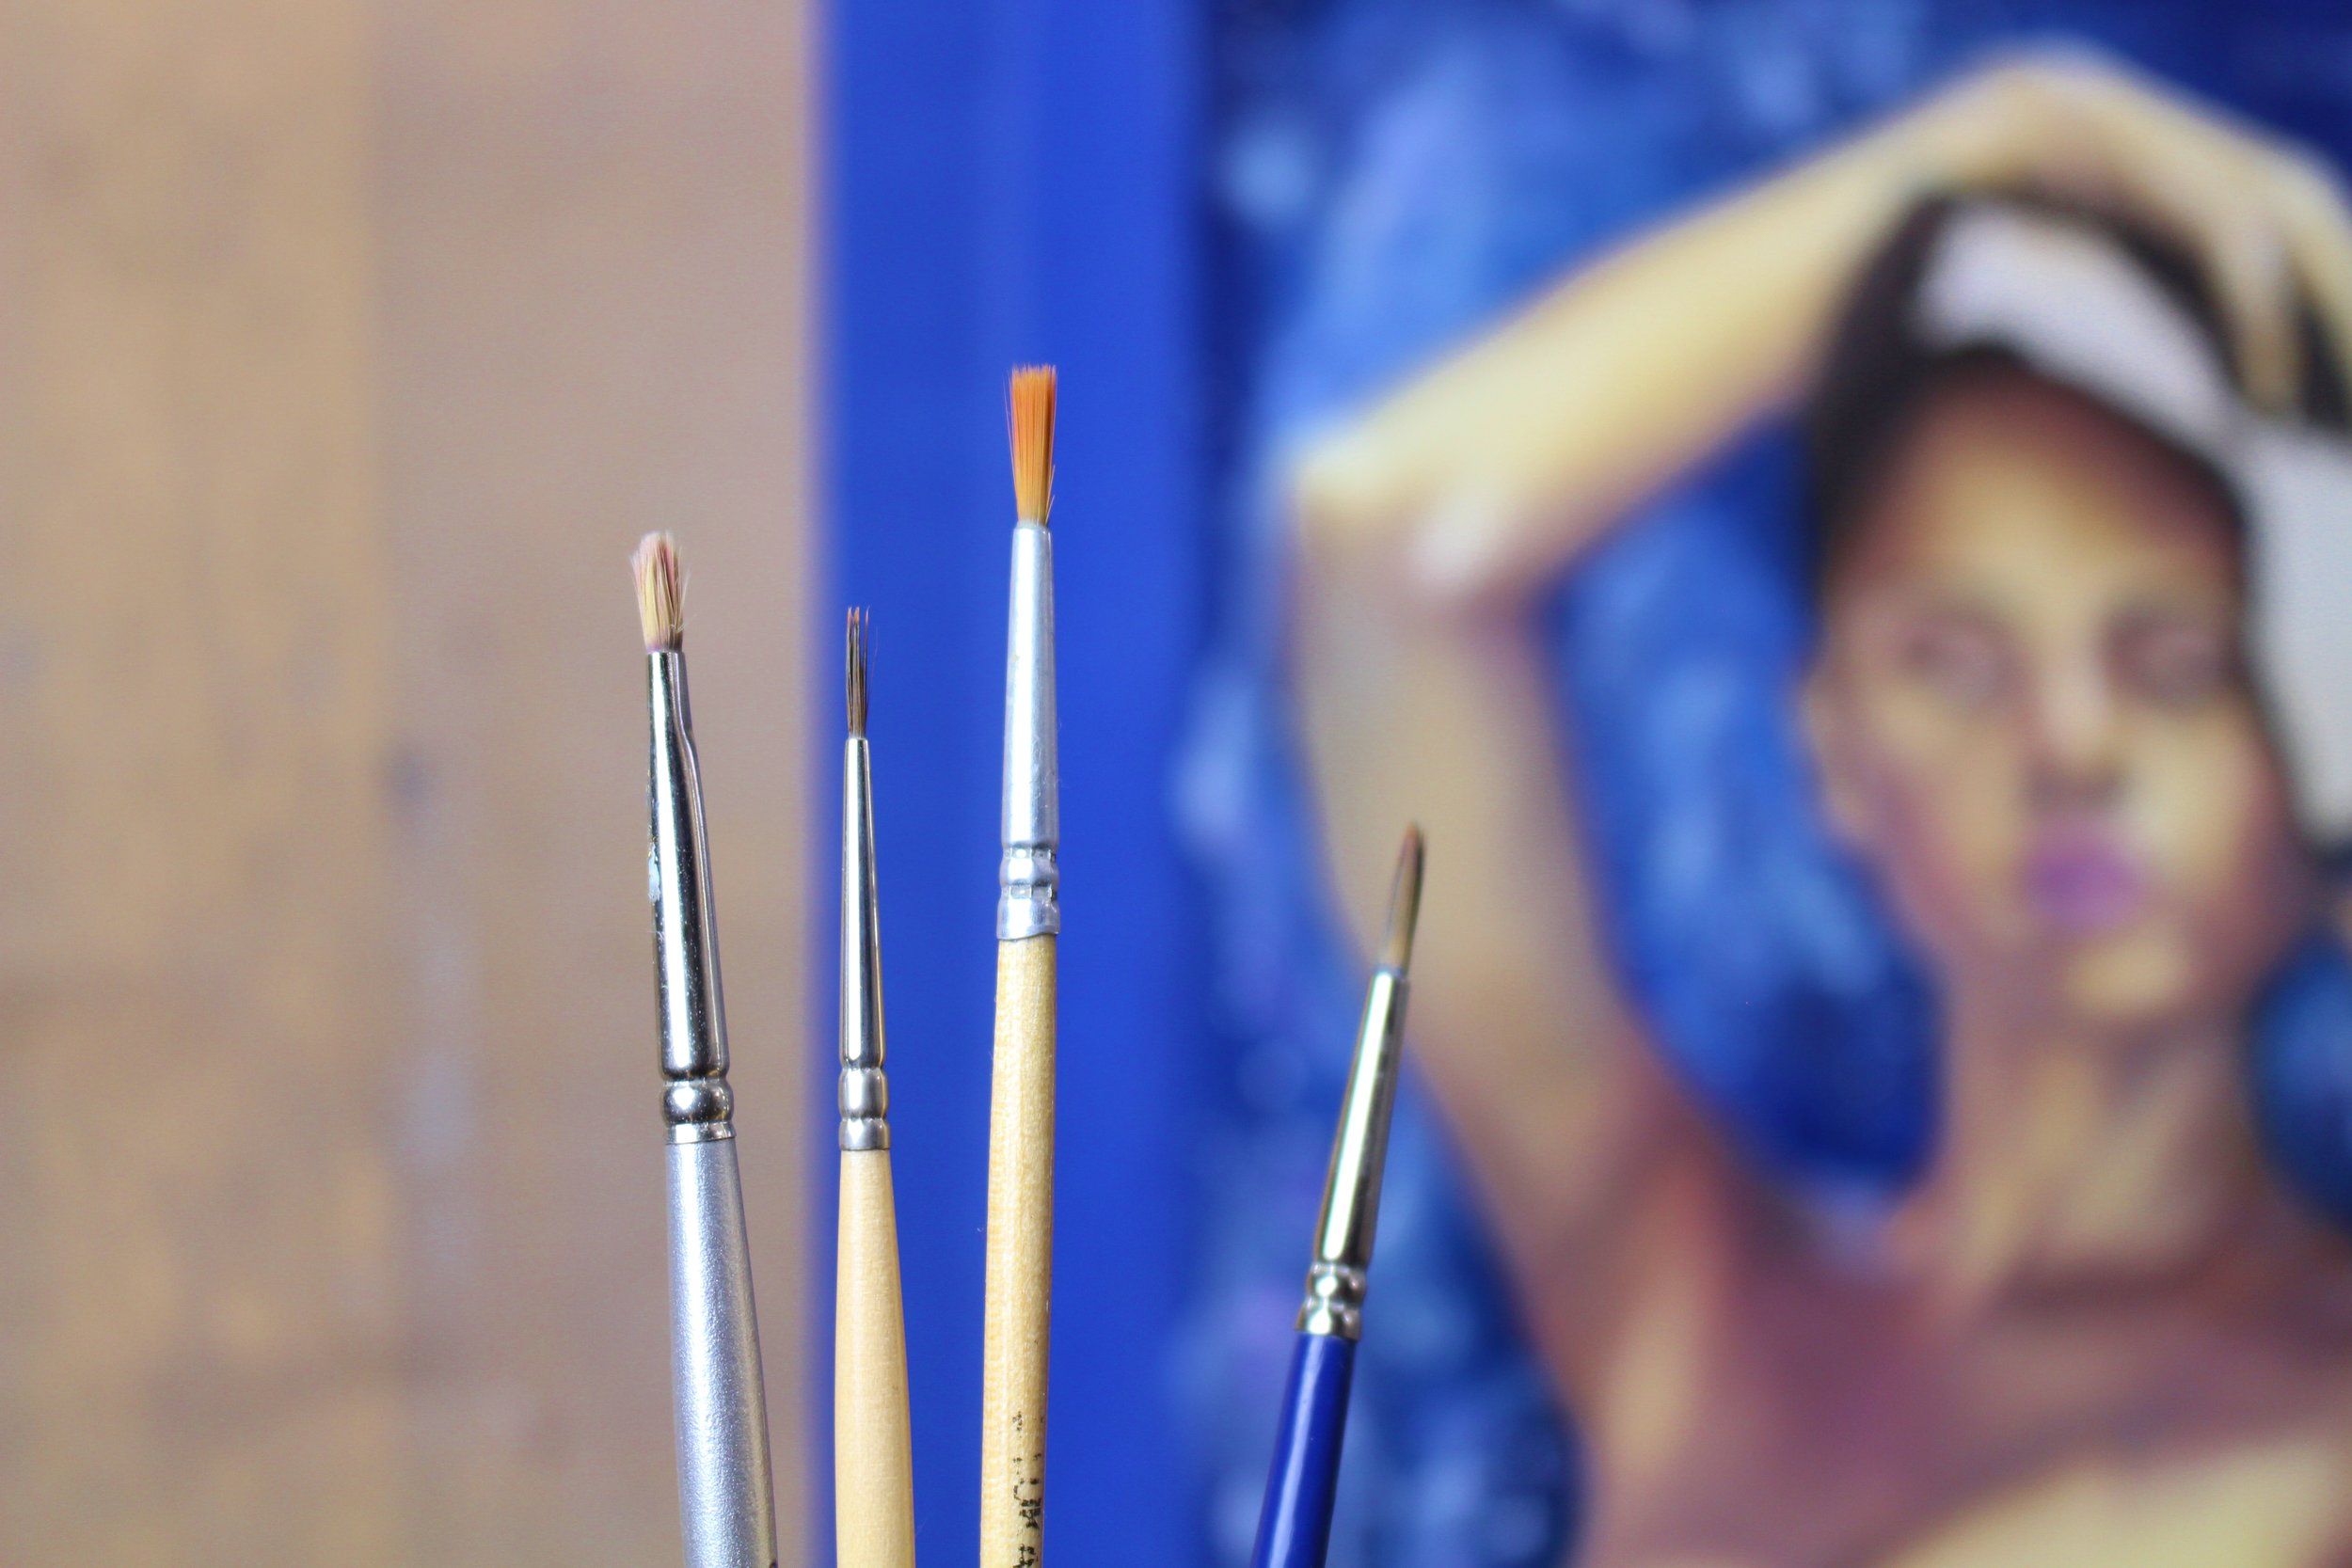 paintbrushes used in oil painting